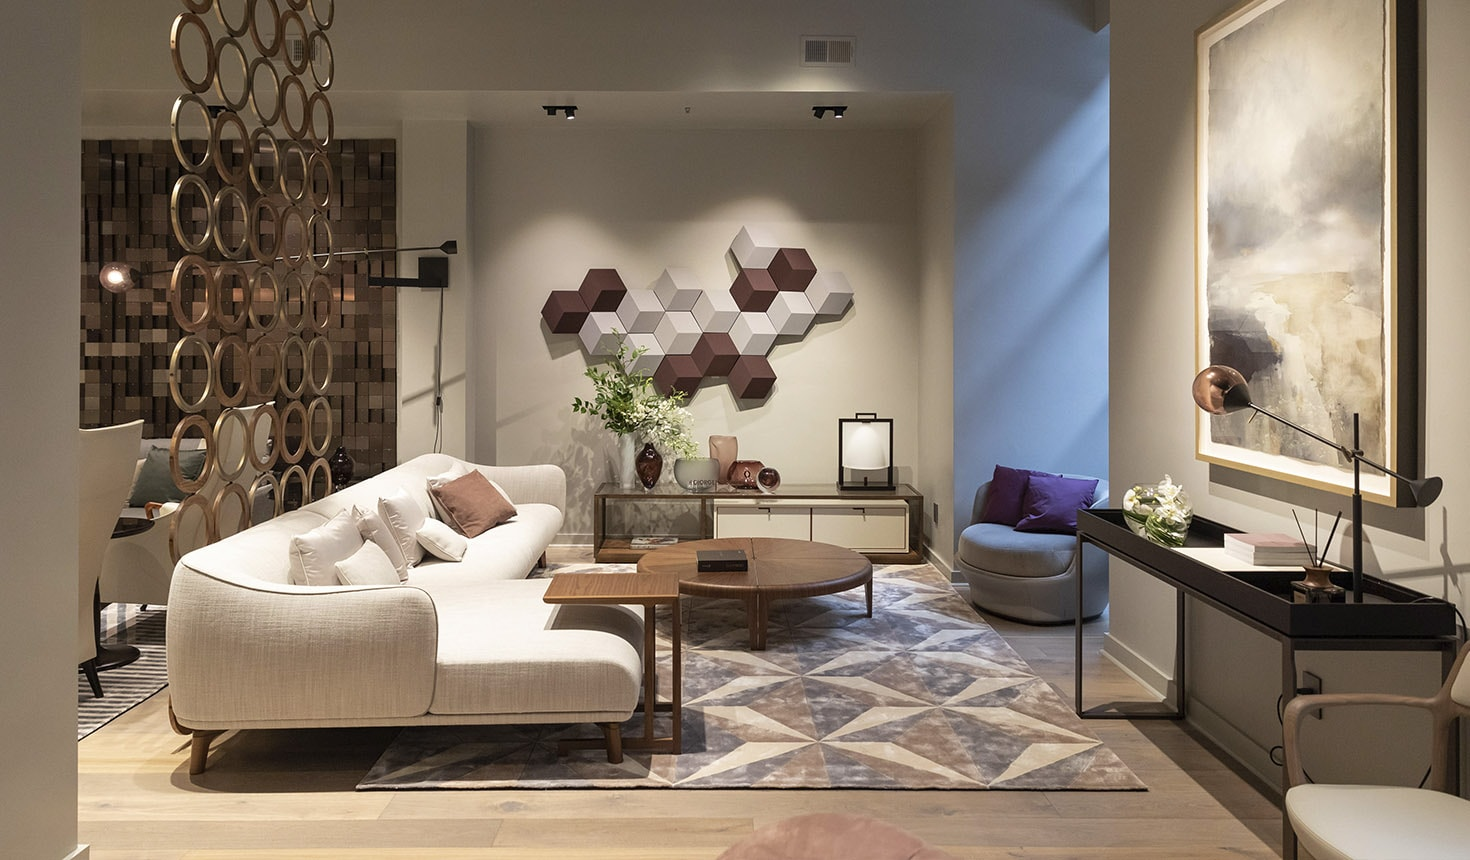 GIORGETTI OPENS A NEW STORE IN BOSTON AND CONSOLIDATES ITS PRESENCE ON THE AMERICAN MARKET - Giorgetti 1